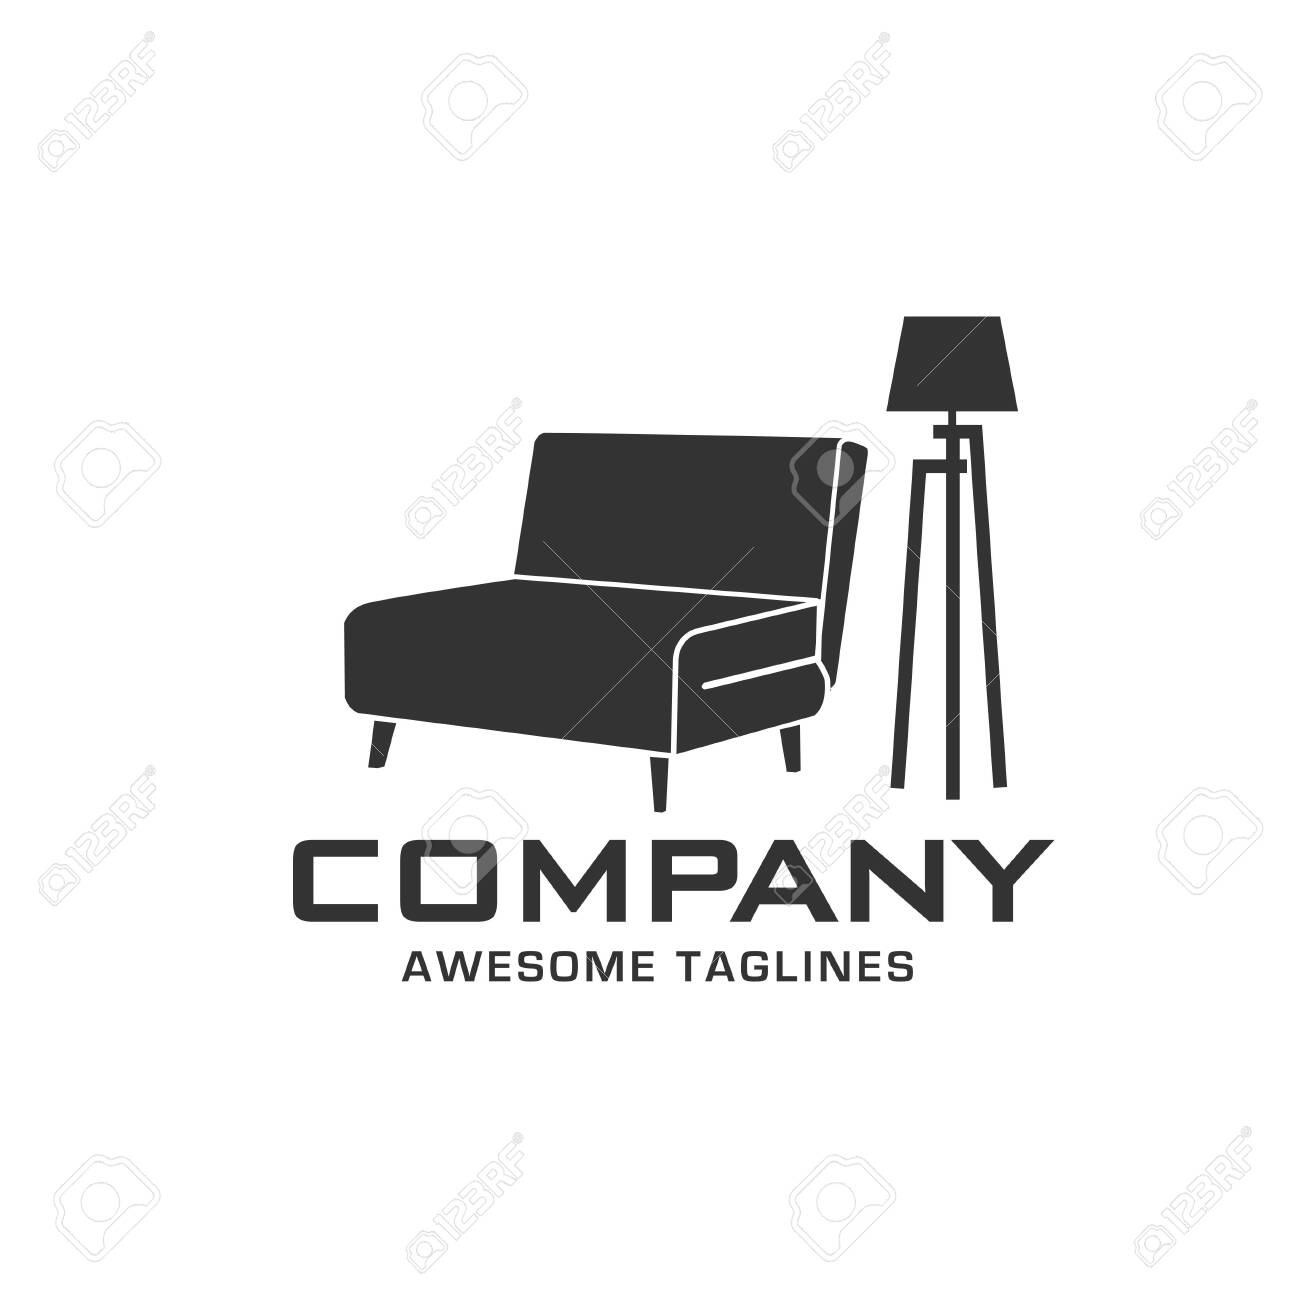 Magnificent Creative Simple Sofa And Lamp For Furniture Logo Company Unemploymentrelief Wooden Chair Designs For Living Room Unemploymentrelieforg